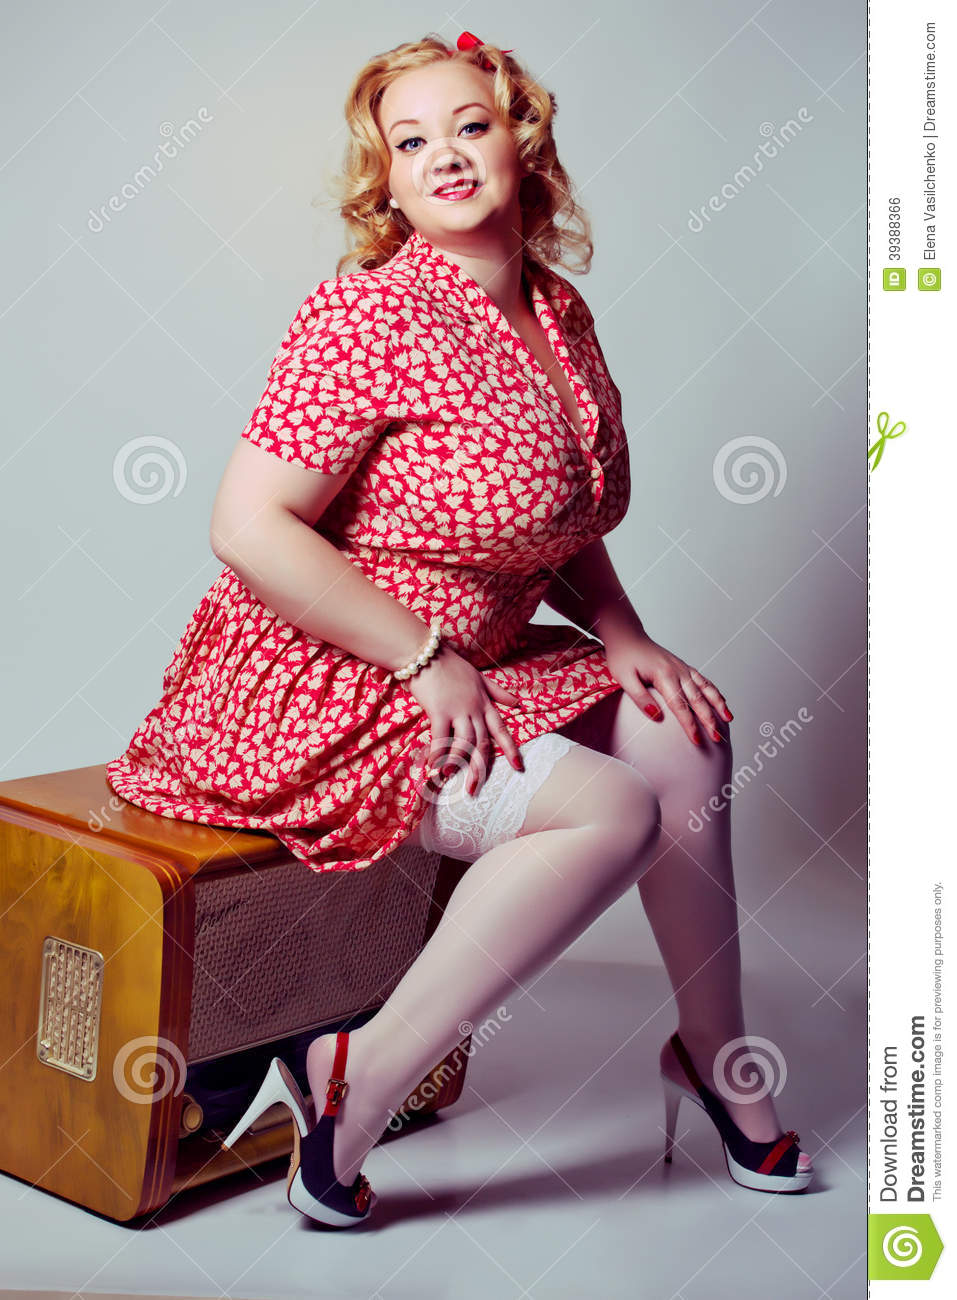 pin up girl posing over white background stock photo image 39388366. Black Bedroom Furniture Sets. Home Design Ideas